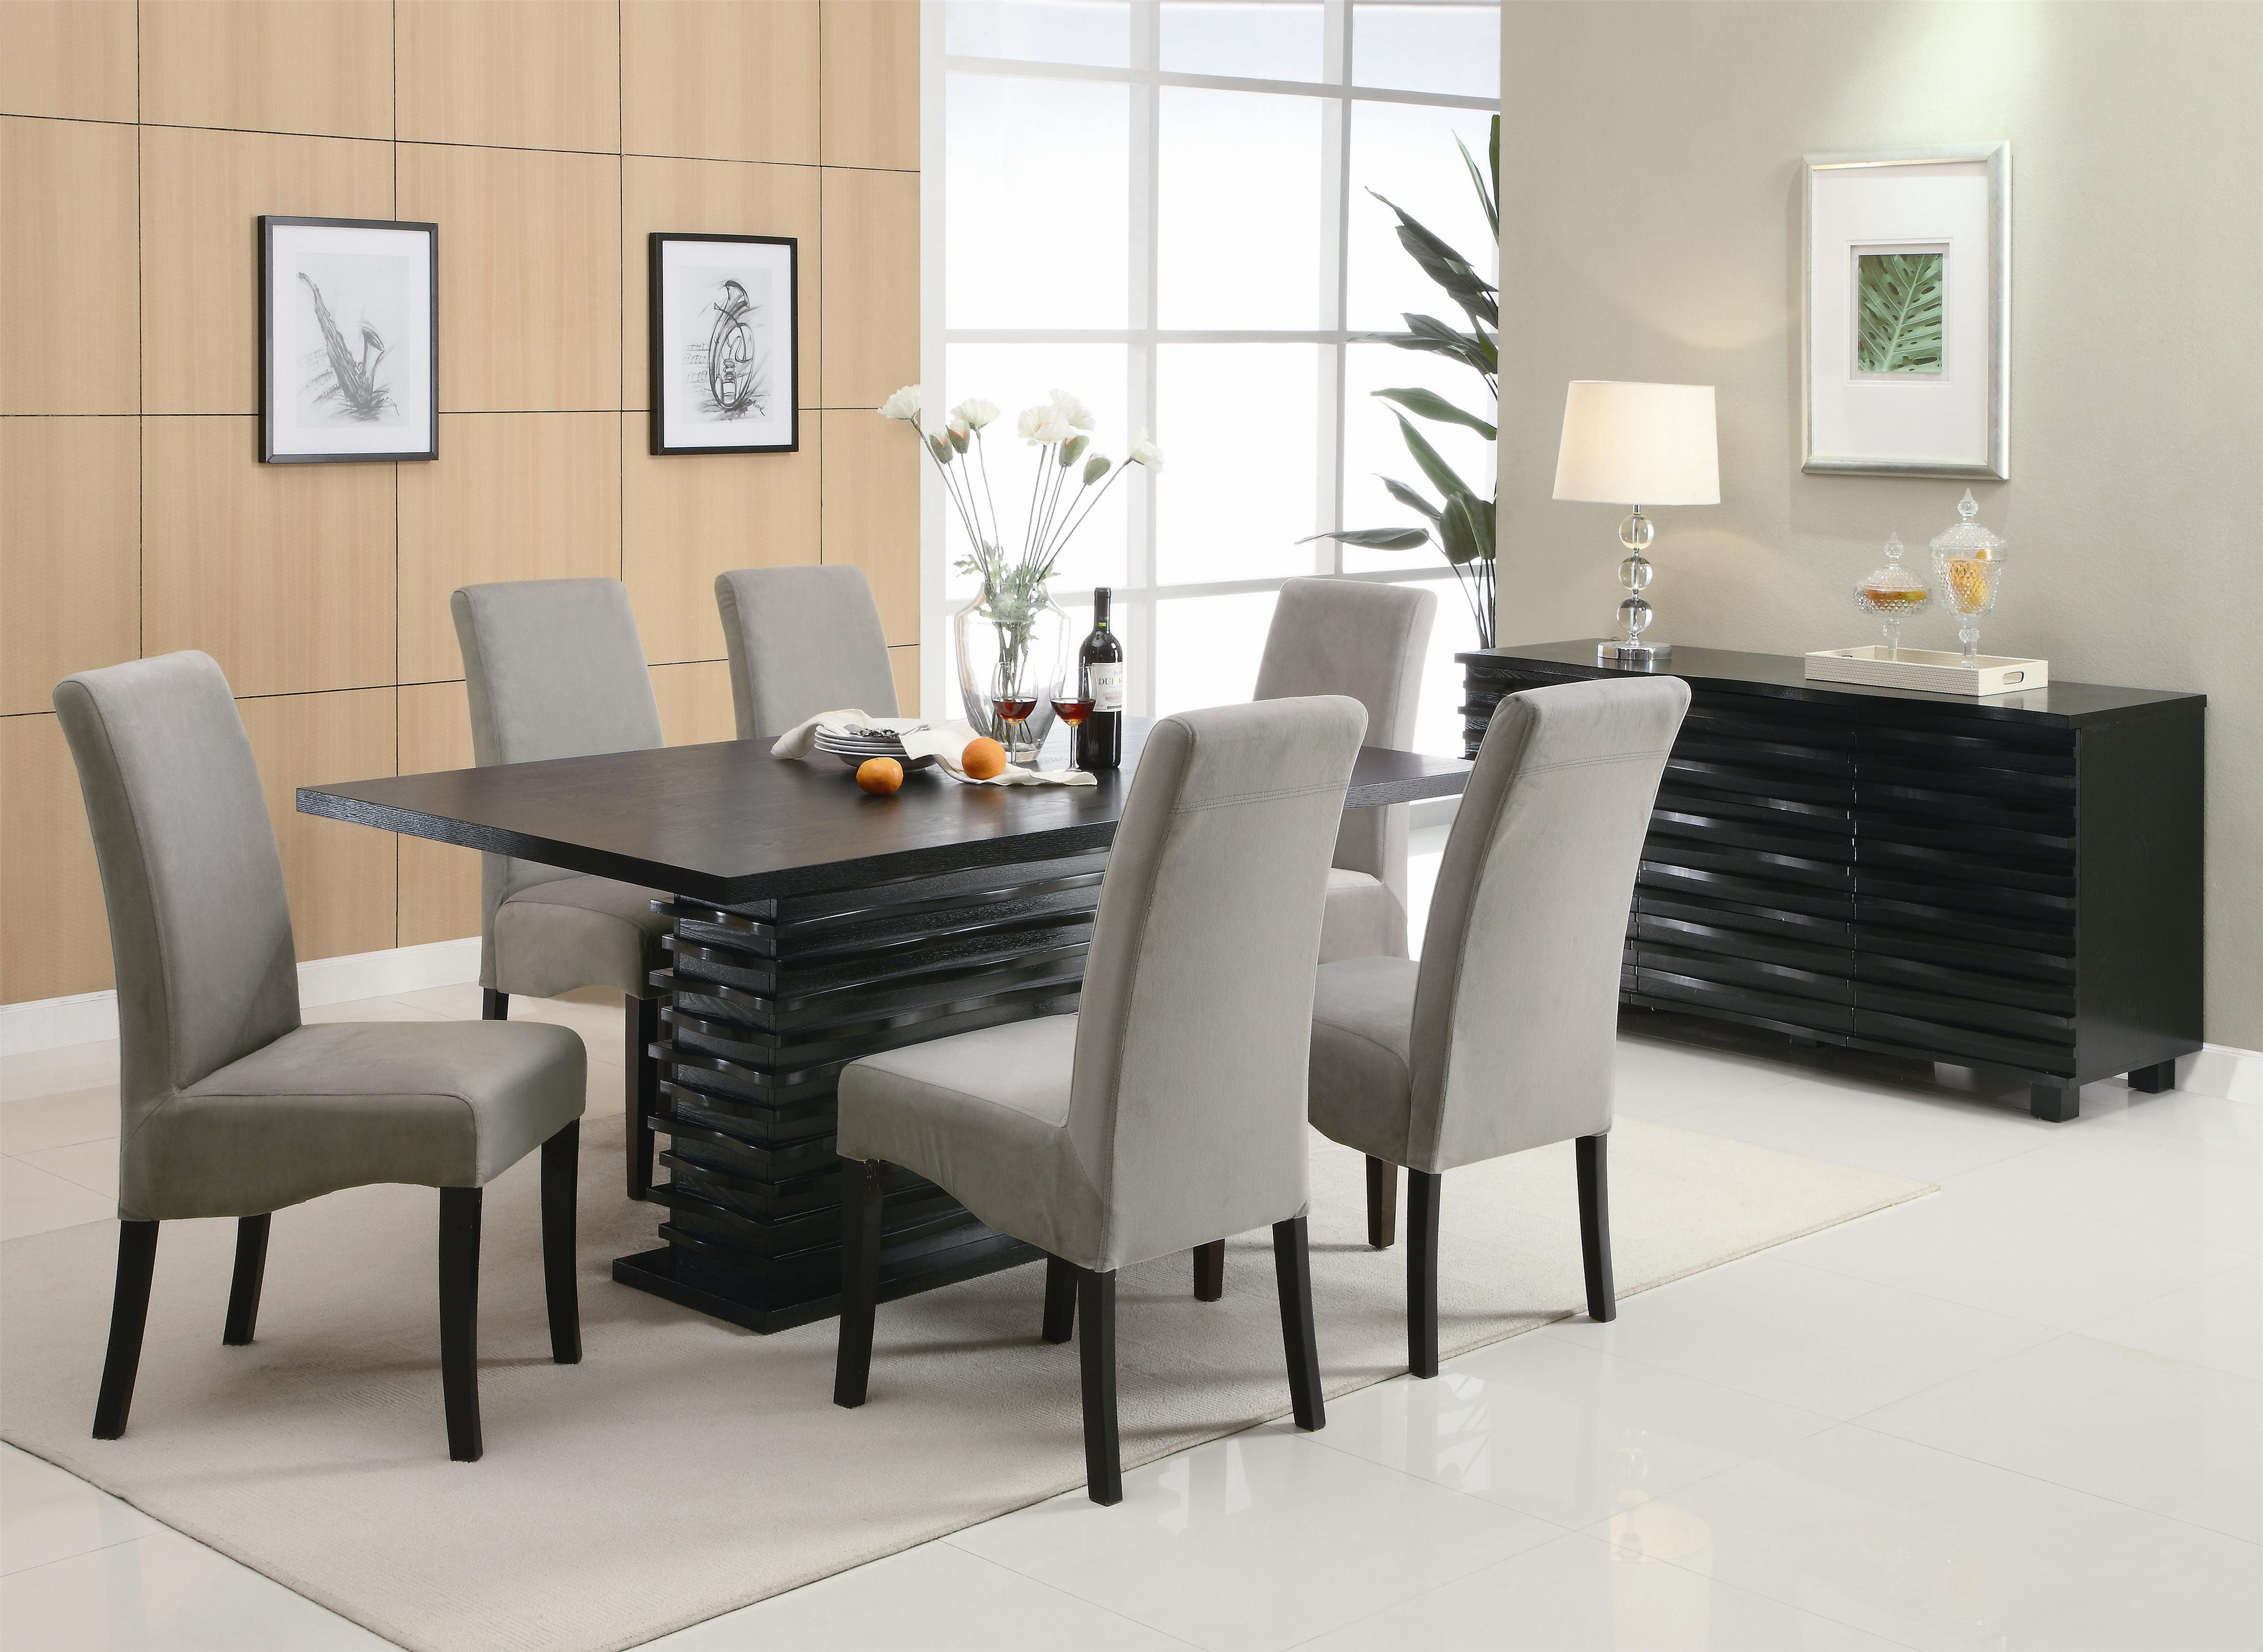 & Coaster Stanton Contemporary Dining Table - Coaster Fine Furniture